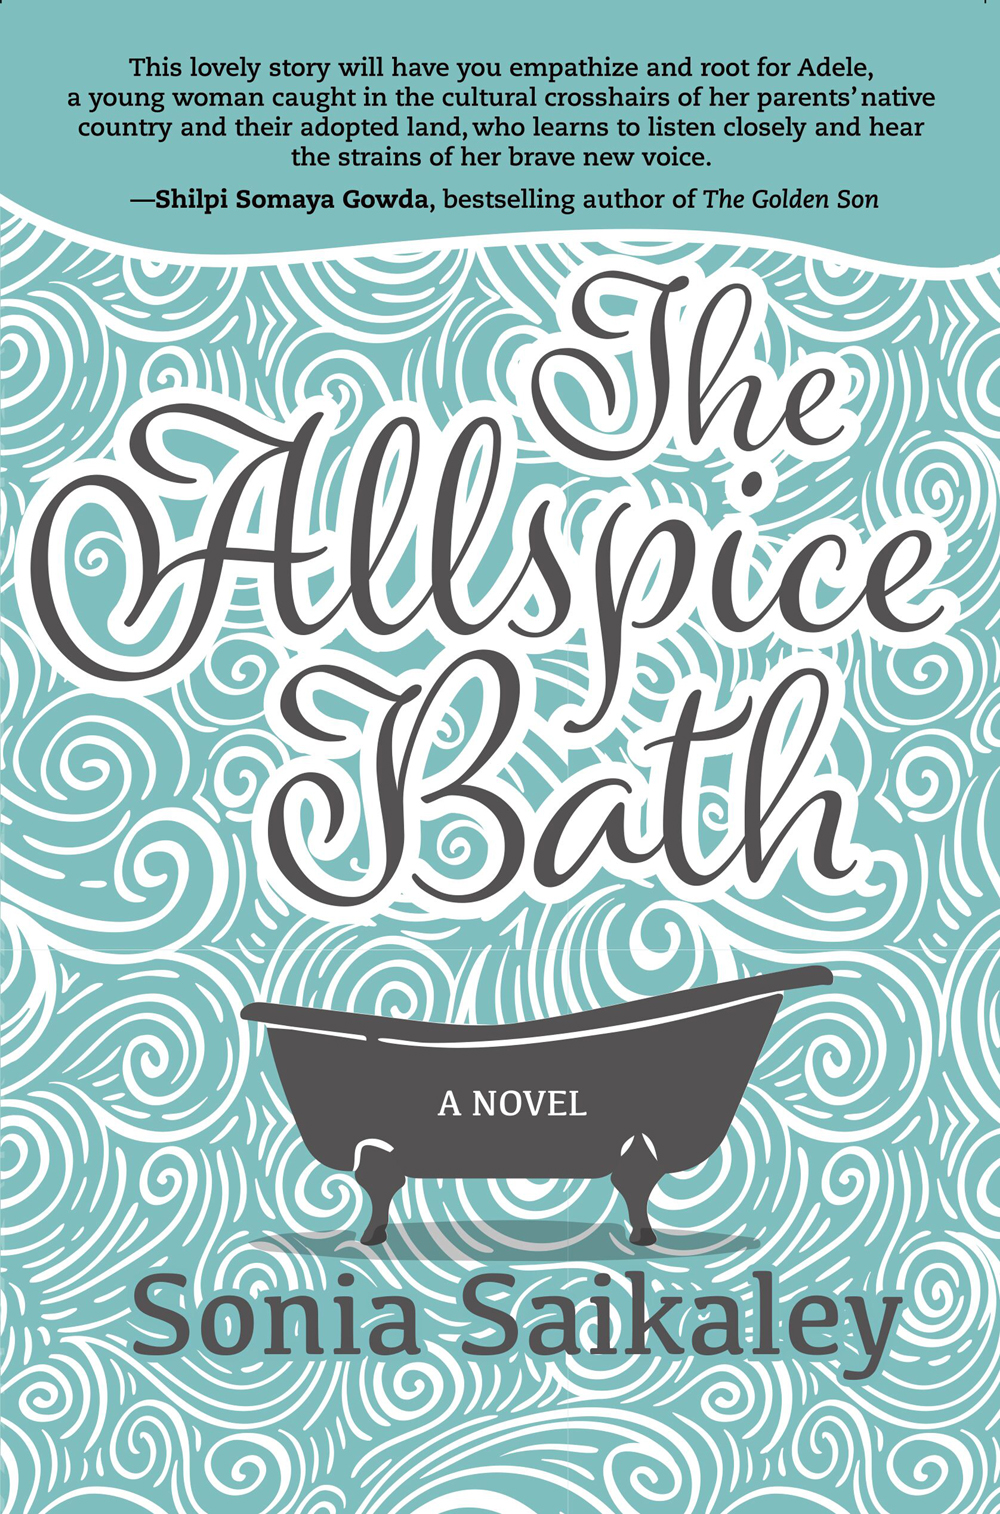 The Allspice Bath